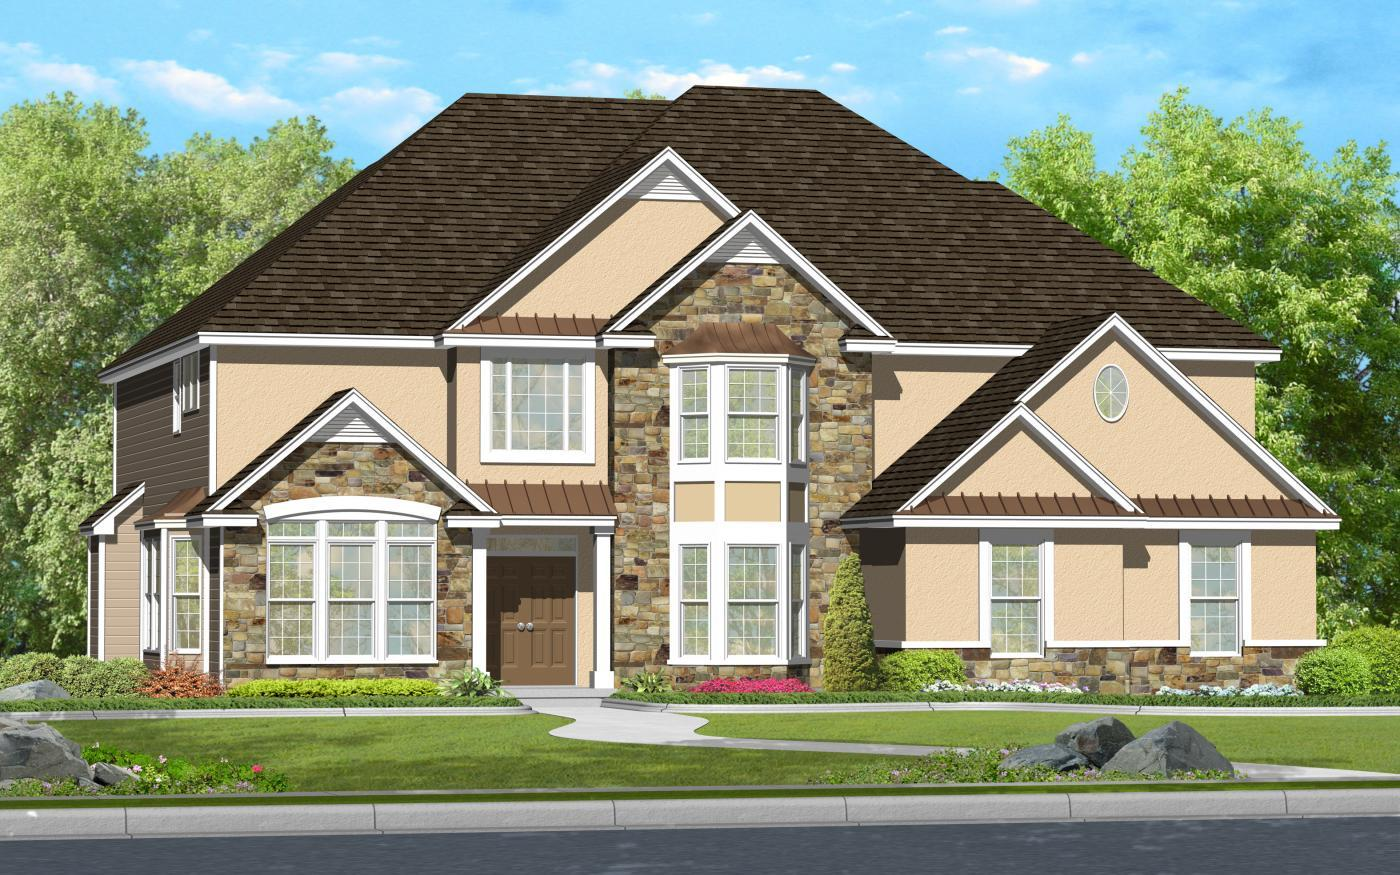 Single Family for Sale at Scenic View - Clayton (Single) 330 Clearview Avenue Nazareth, Pennsylvania 18064 United States